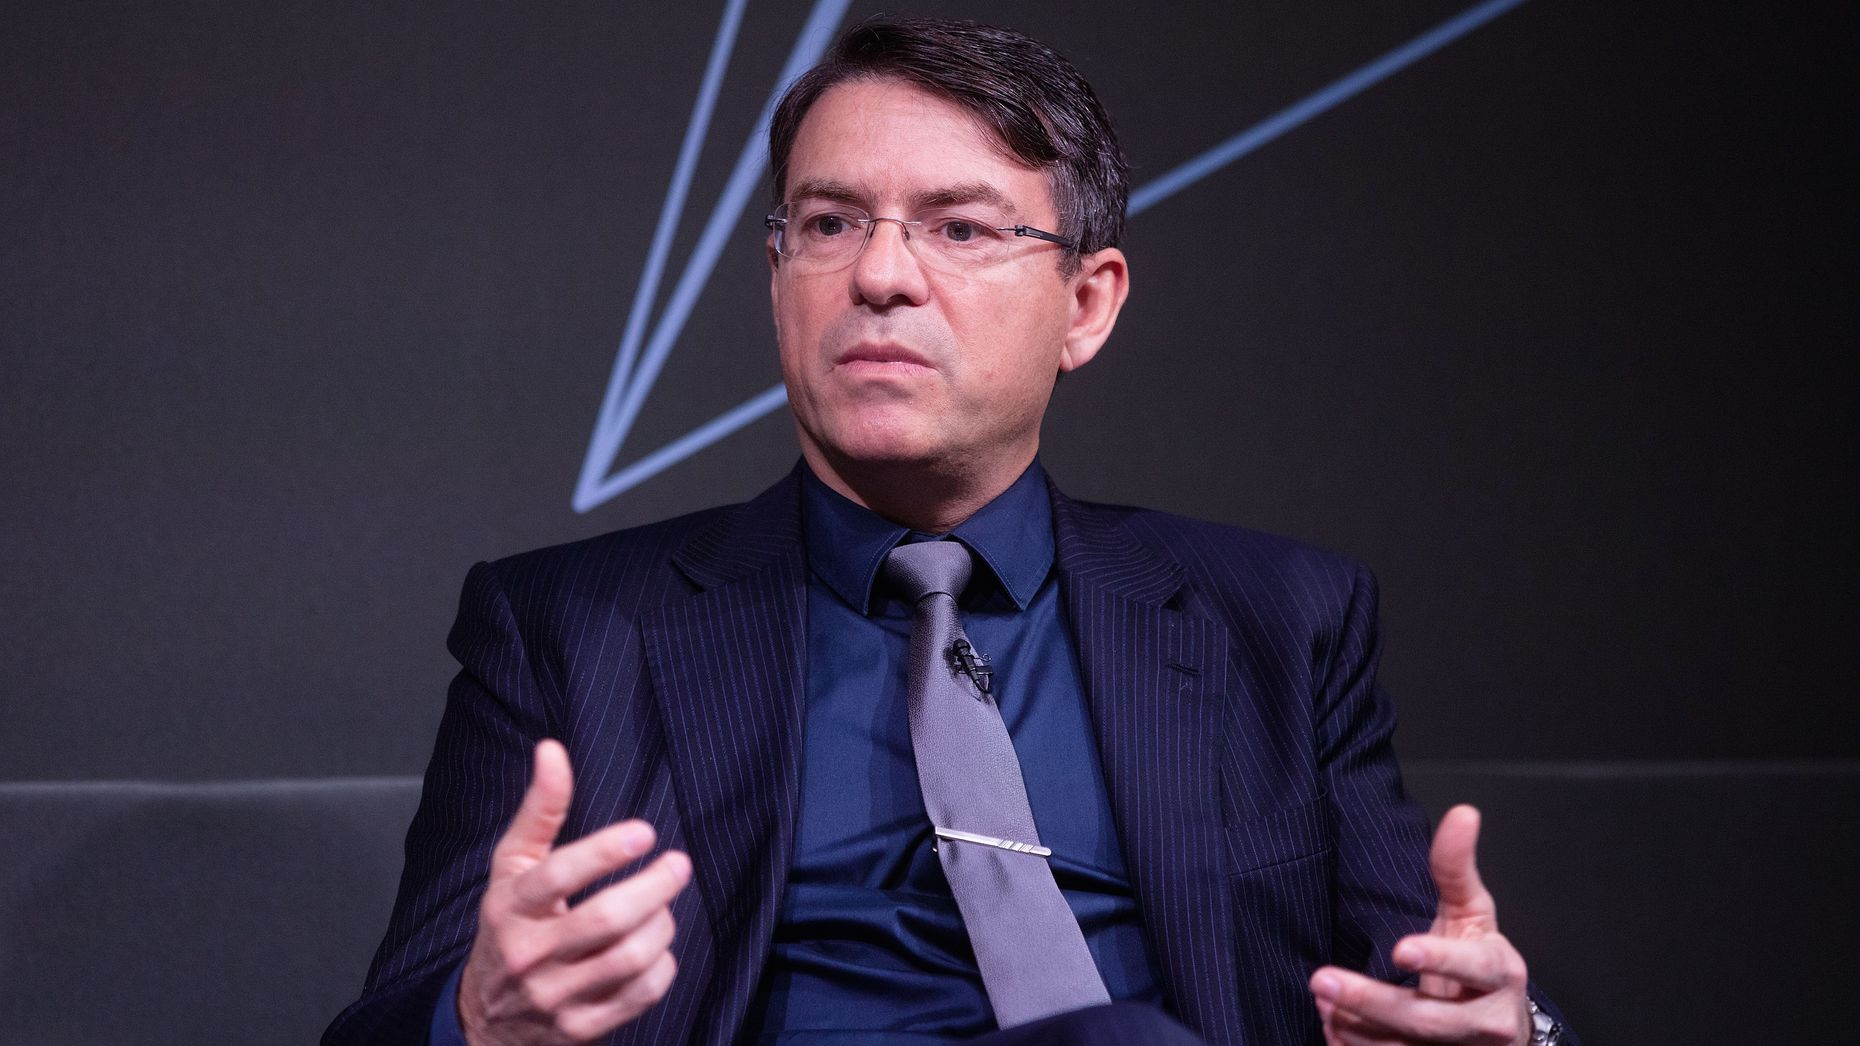 Symphony Communication Services CEO David Gurle. Photo by Bloomberg.